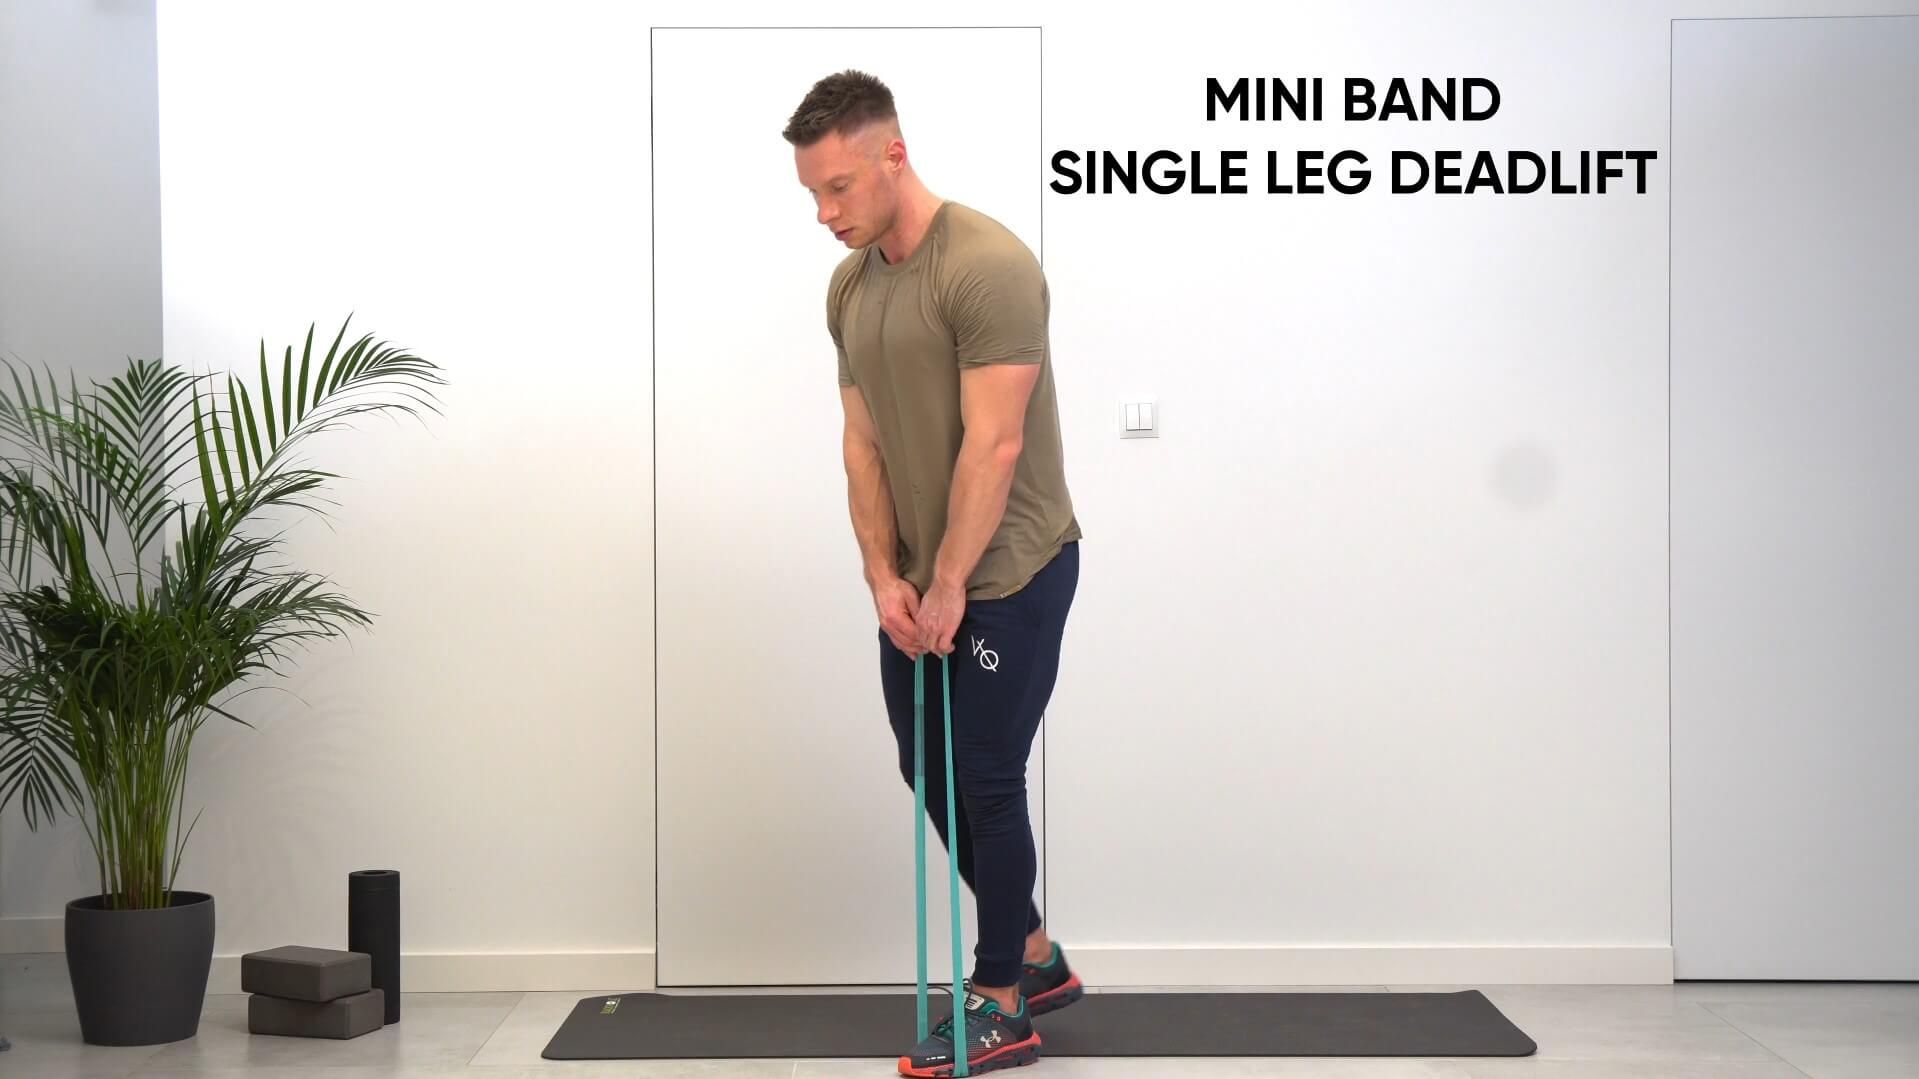 Mini band single leg deadlift